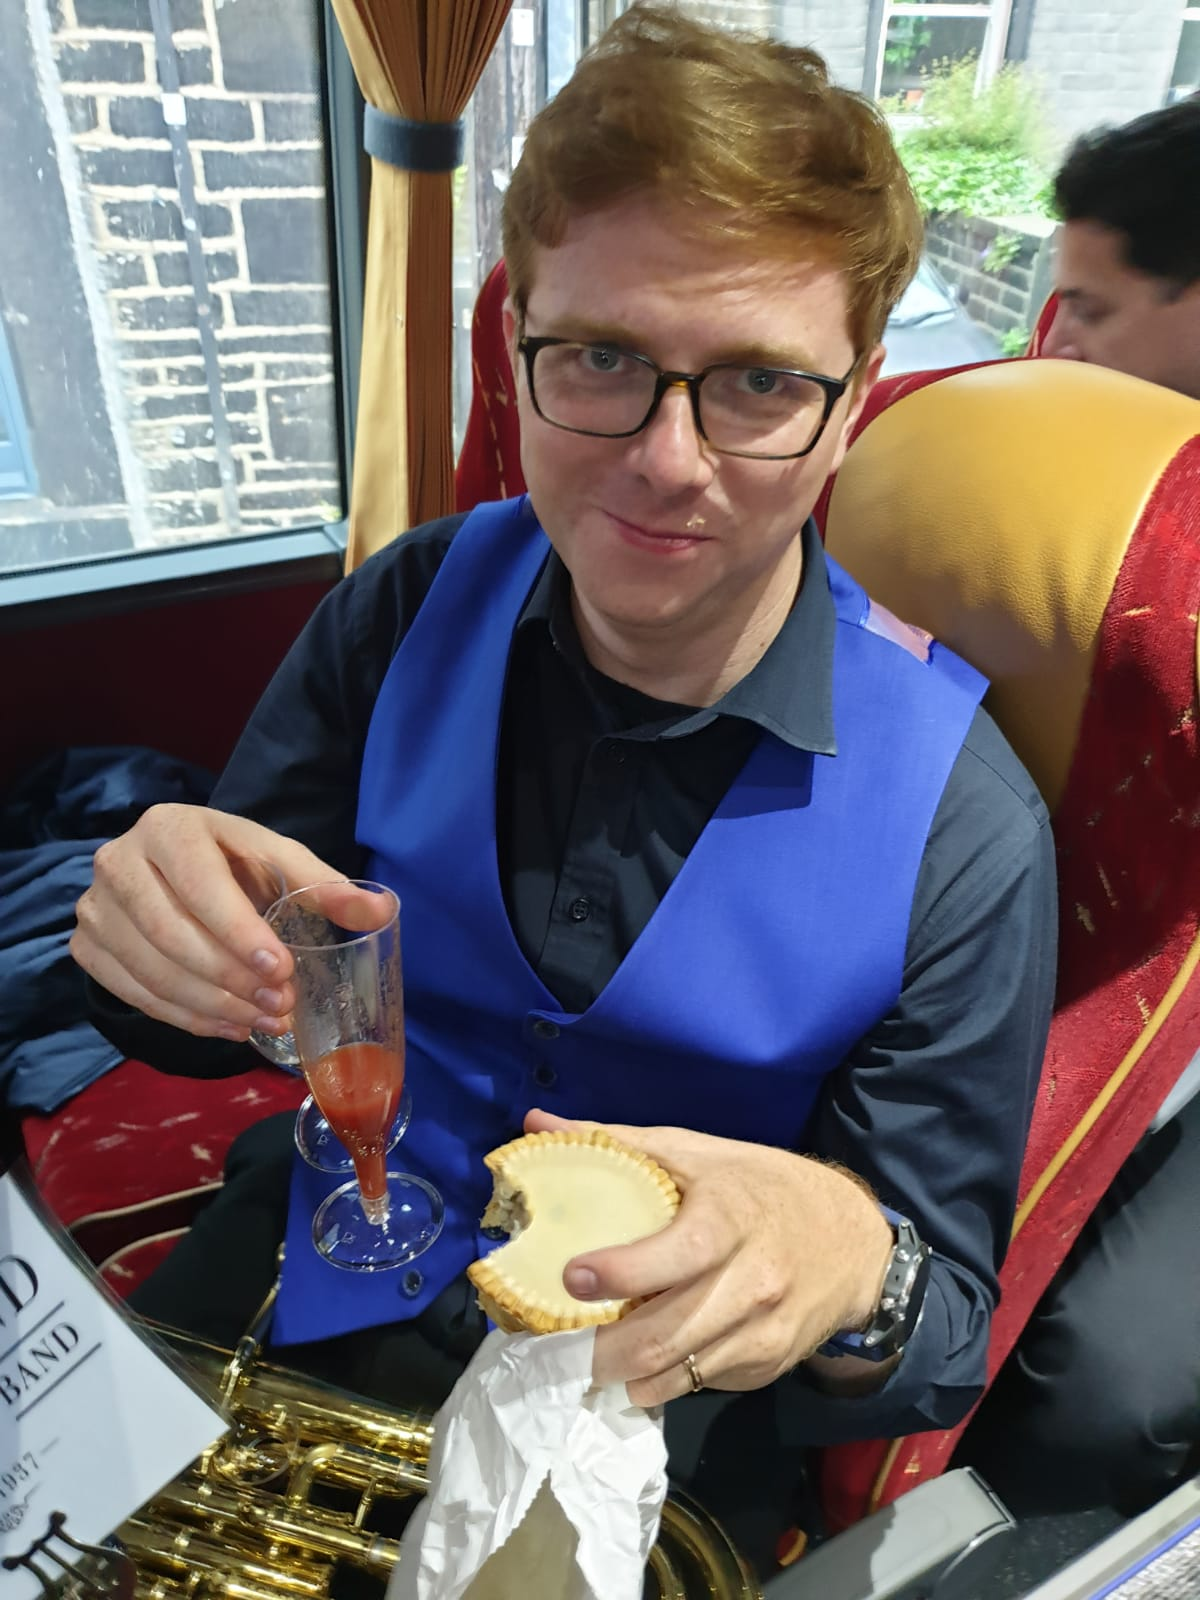 A player on the coach holding a champagne flute and a pork pie